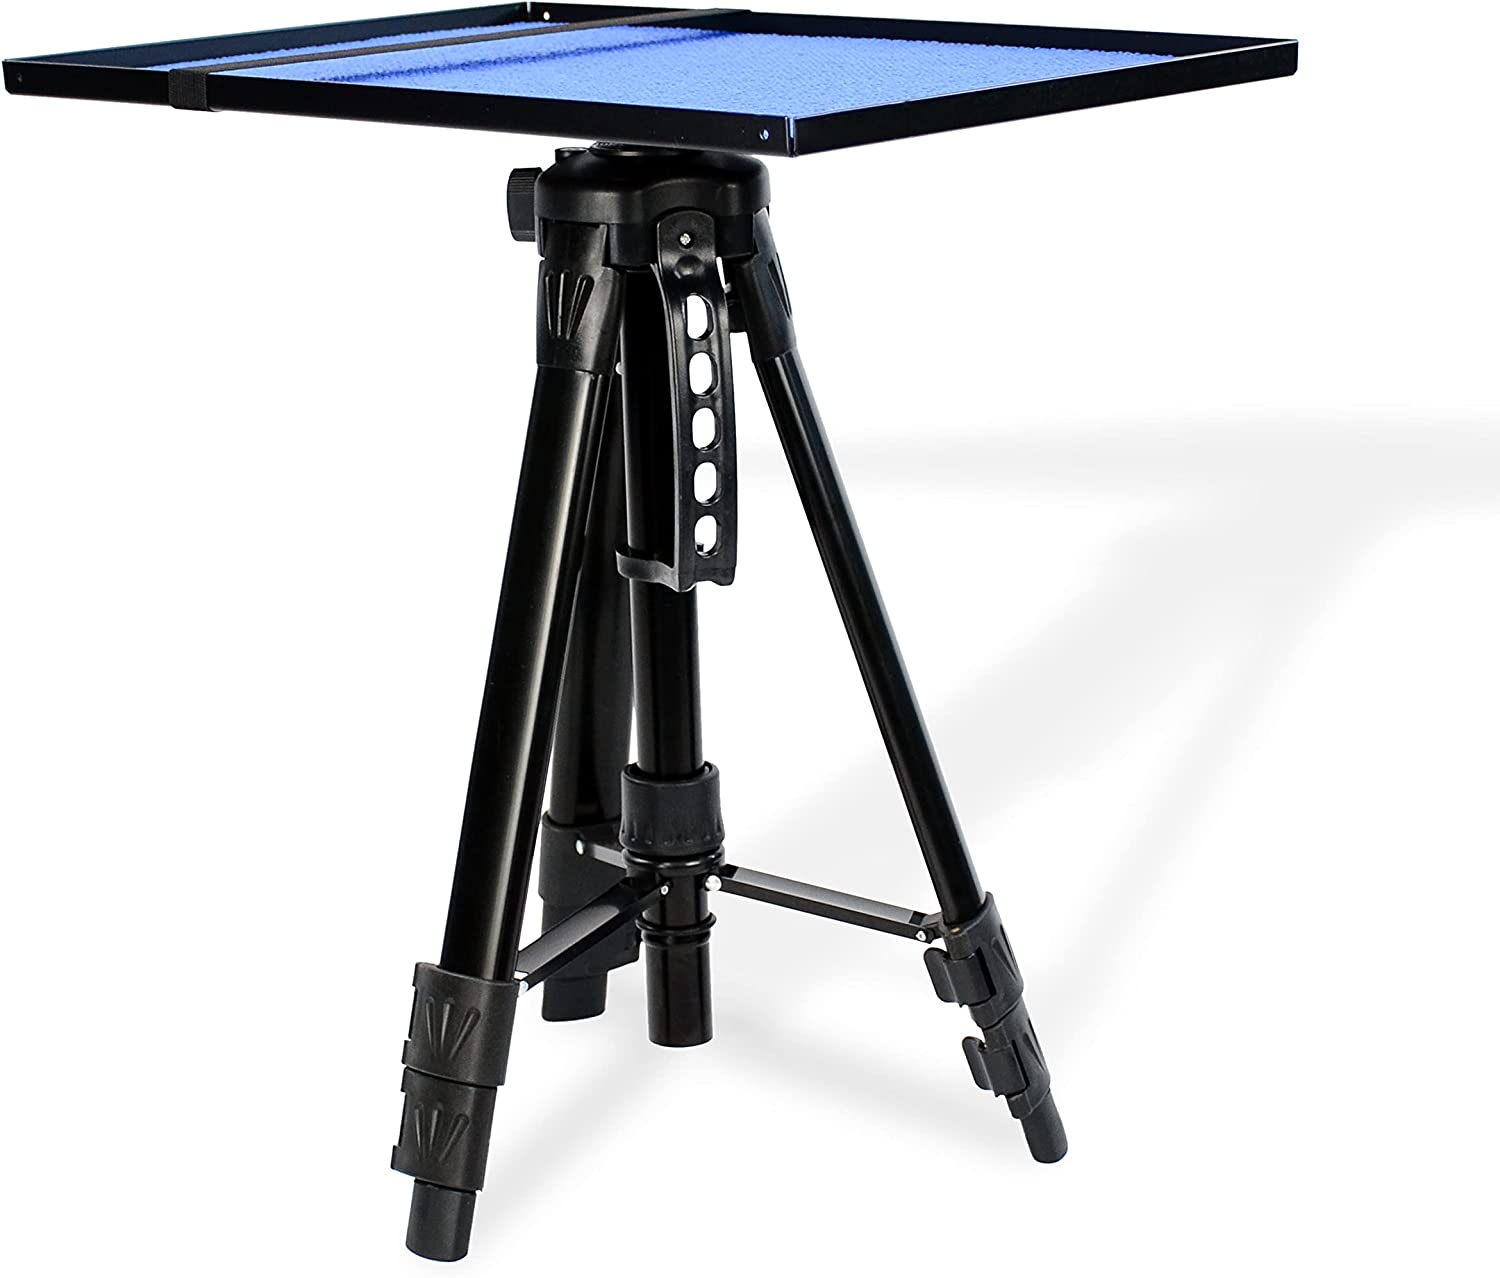 TORIBIO Universal Laptop Projector Tripod Stand with Tray, Portable Computer, Tablet, DJ Equipment Holder Mount, 17